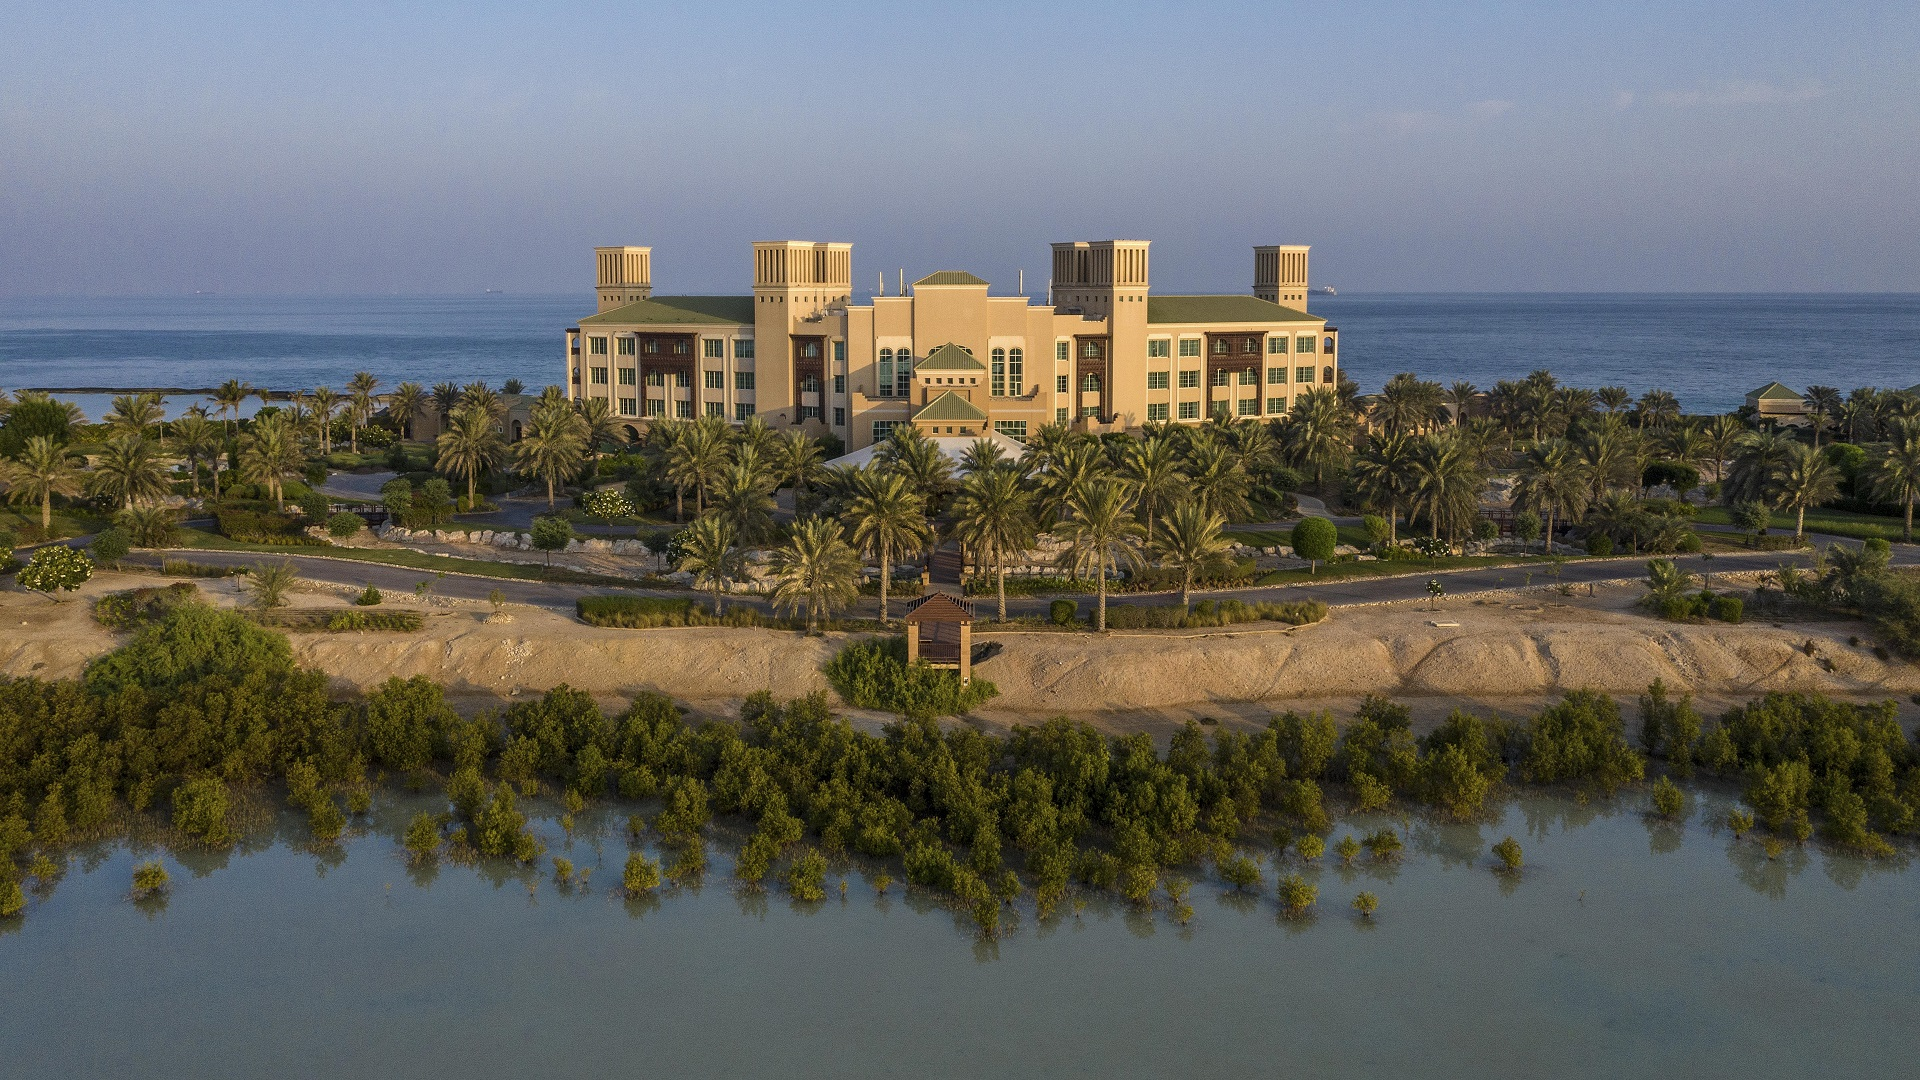 Desert_Islands_Resort_and_Spa_by_Anantara_Exterior_View_Daylight_Aerial 1920*1080